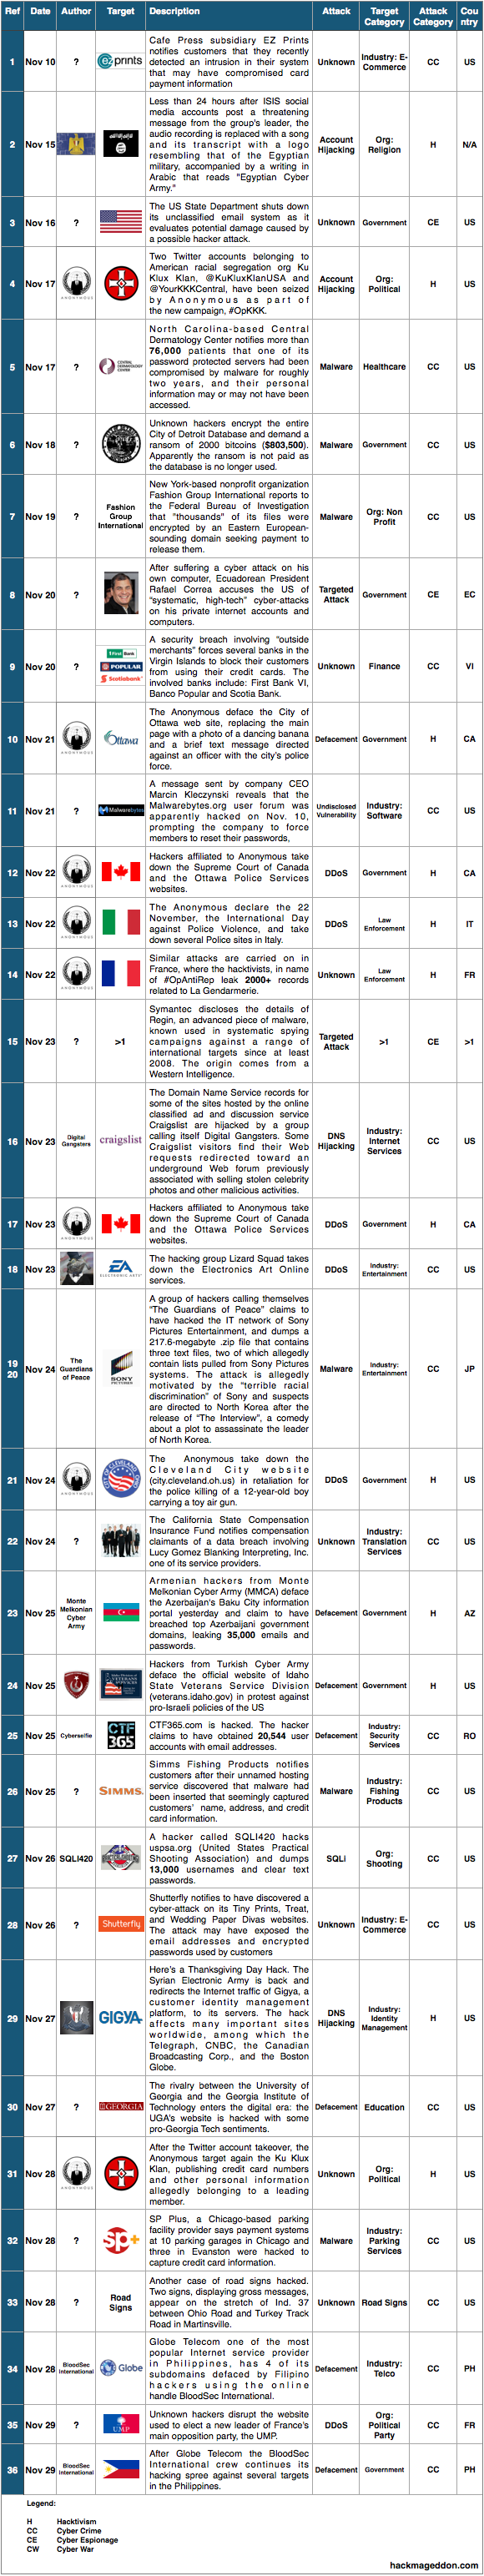 16-30 November 2014 Cyber Attacks Timeline